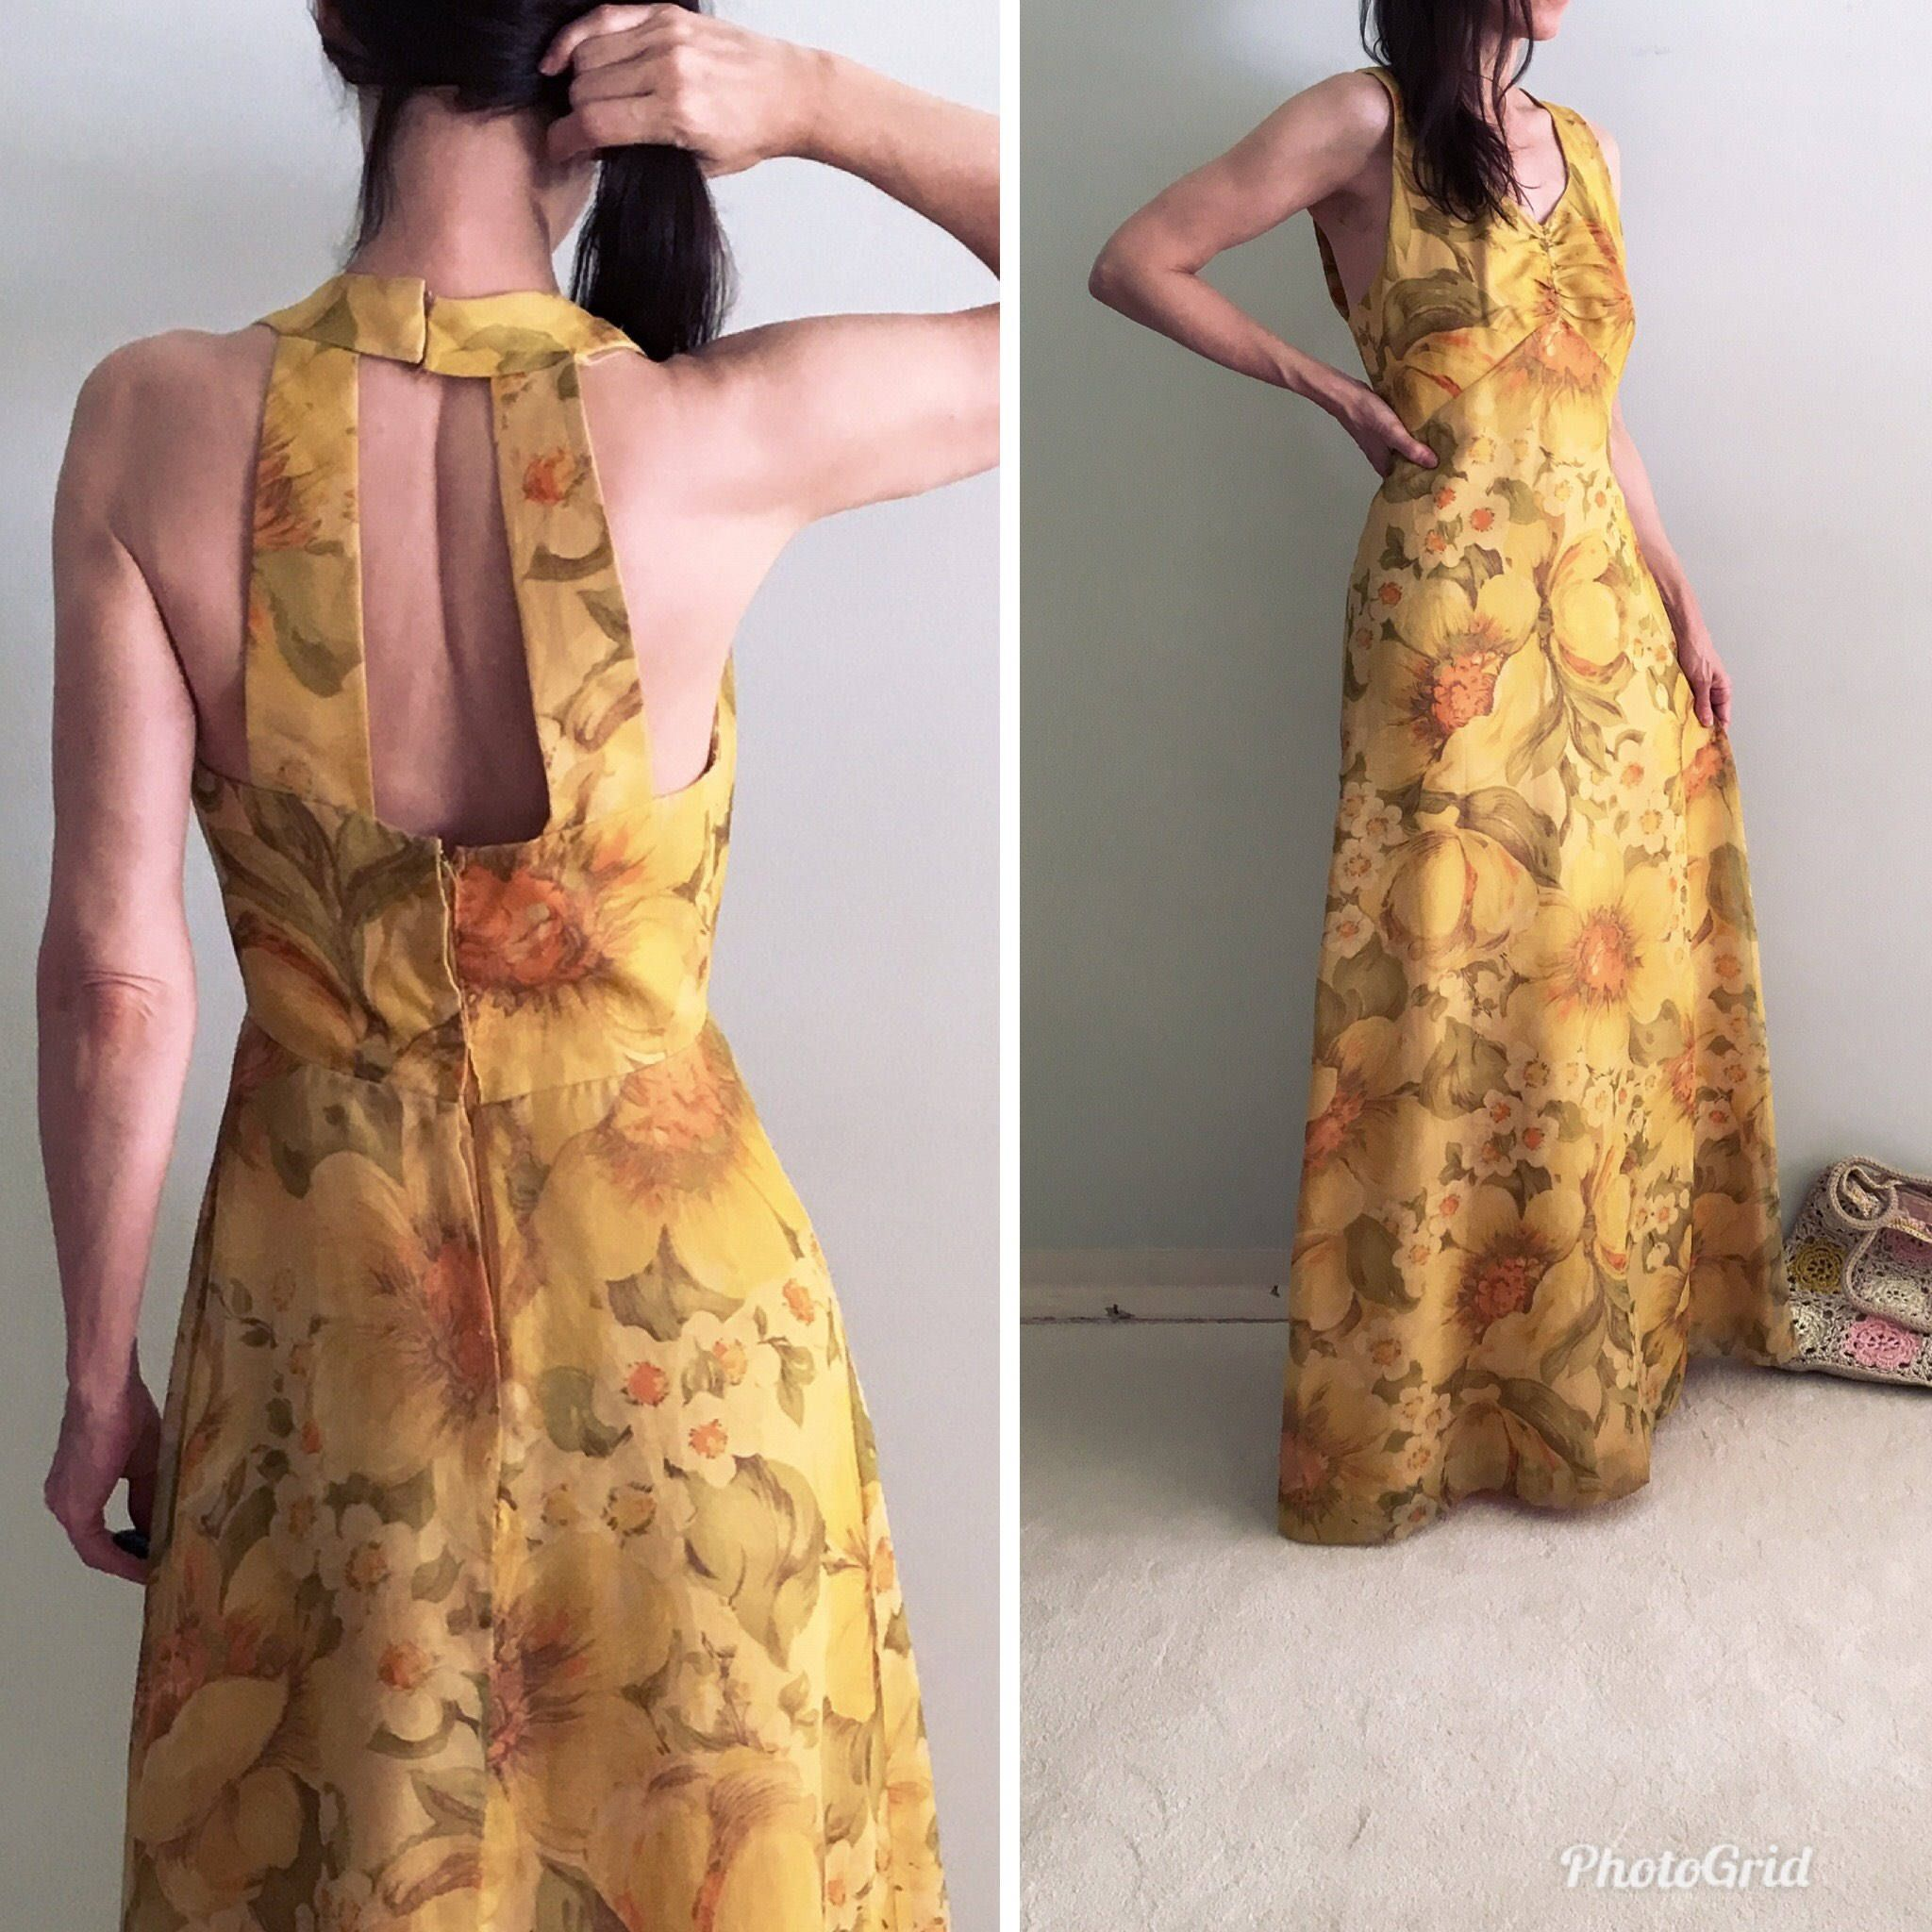 892e58b5587a7 Open back halter 70s boho party dress/women S 4 vintage 60s evening  festival hippie maxi dress/Keyhole sleeveless evening floral long dress by  ...